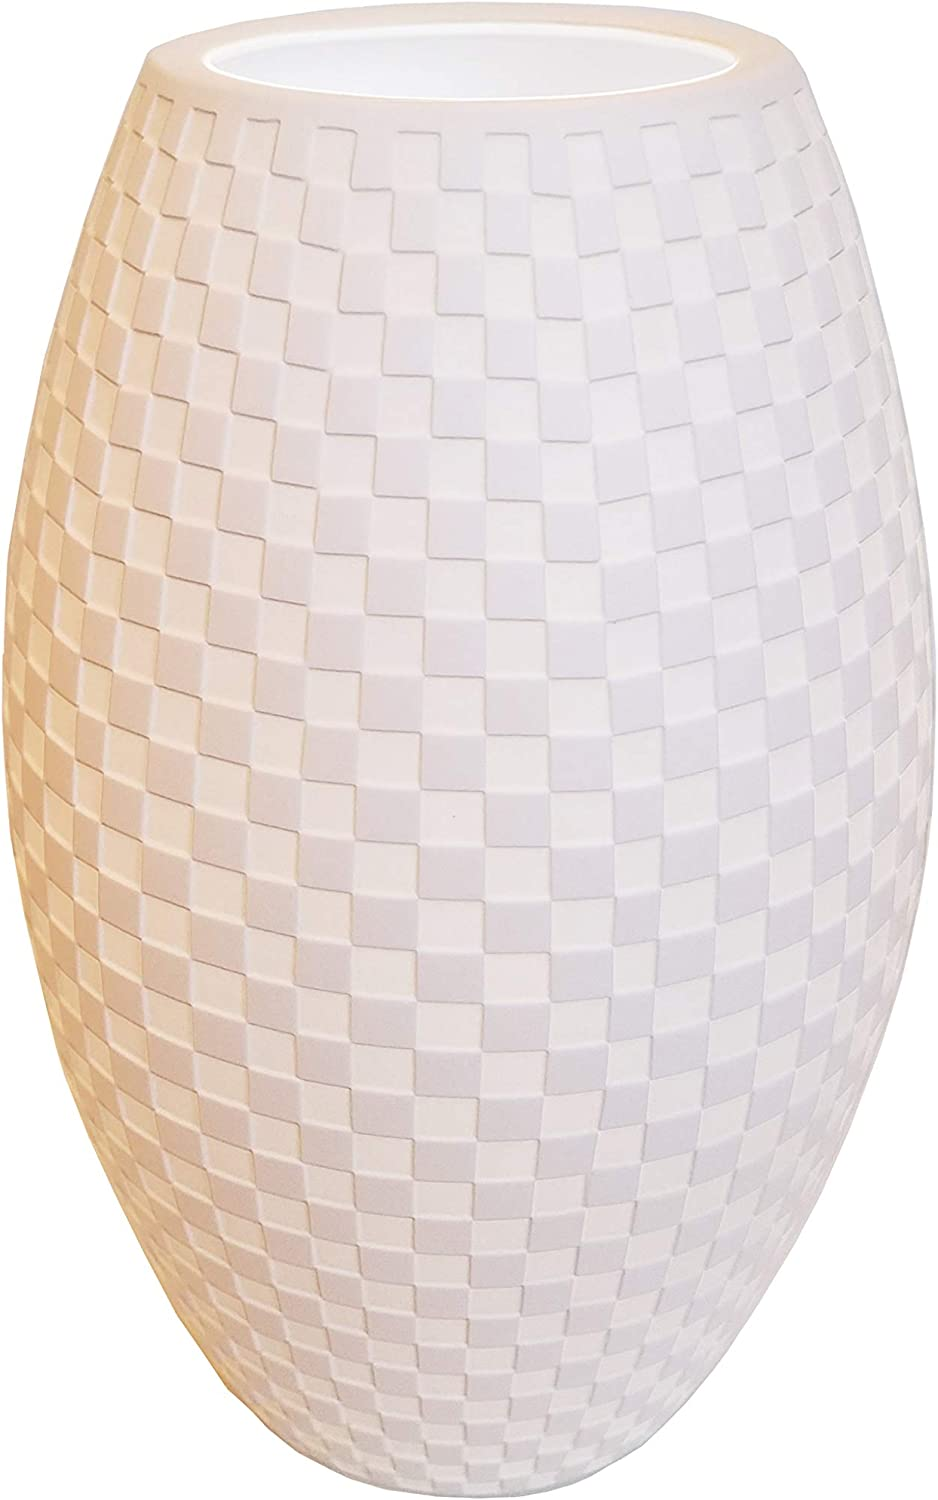 Justice Design Limoges Tall Egg Accent Lamp Max 50% OFF Checkerboard wholesale